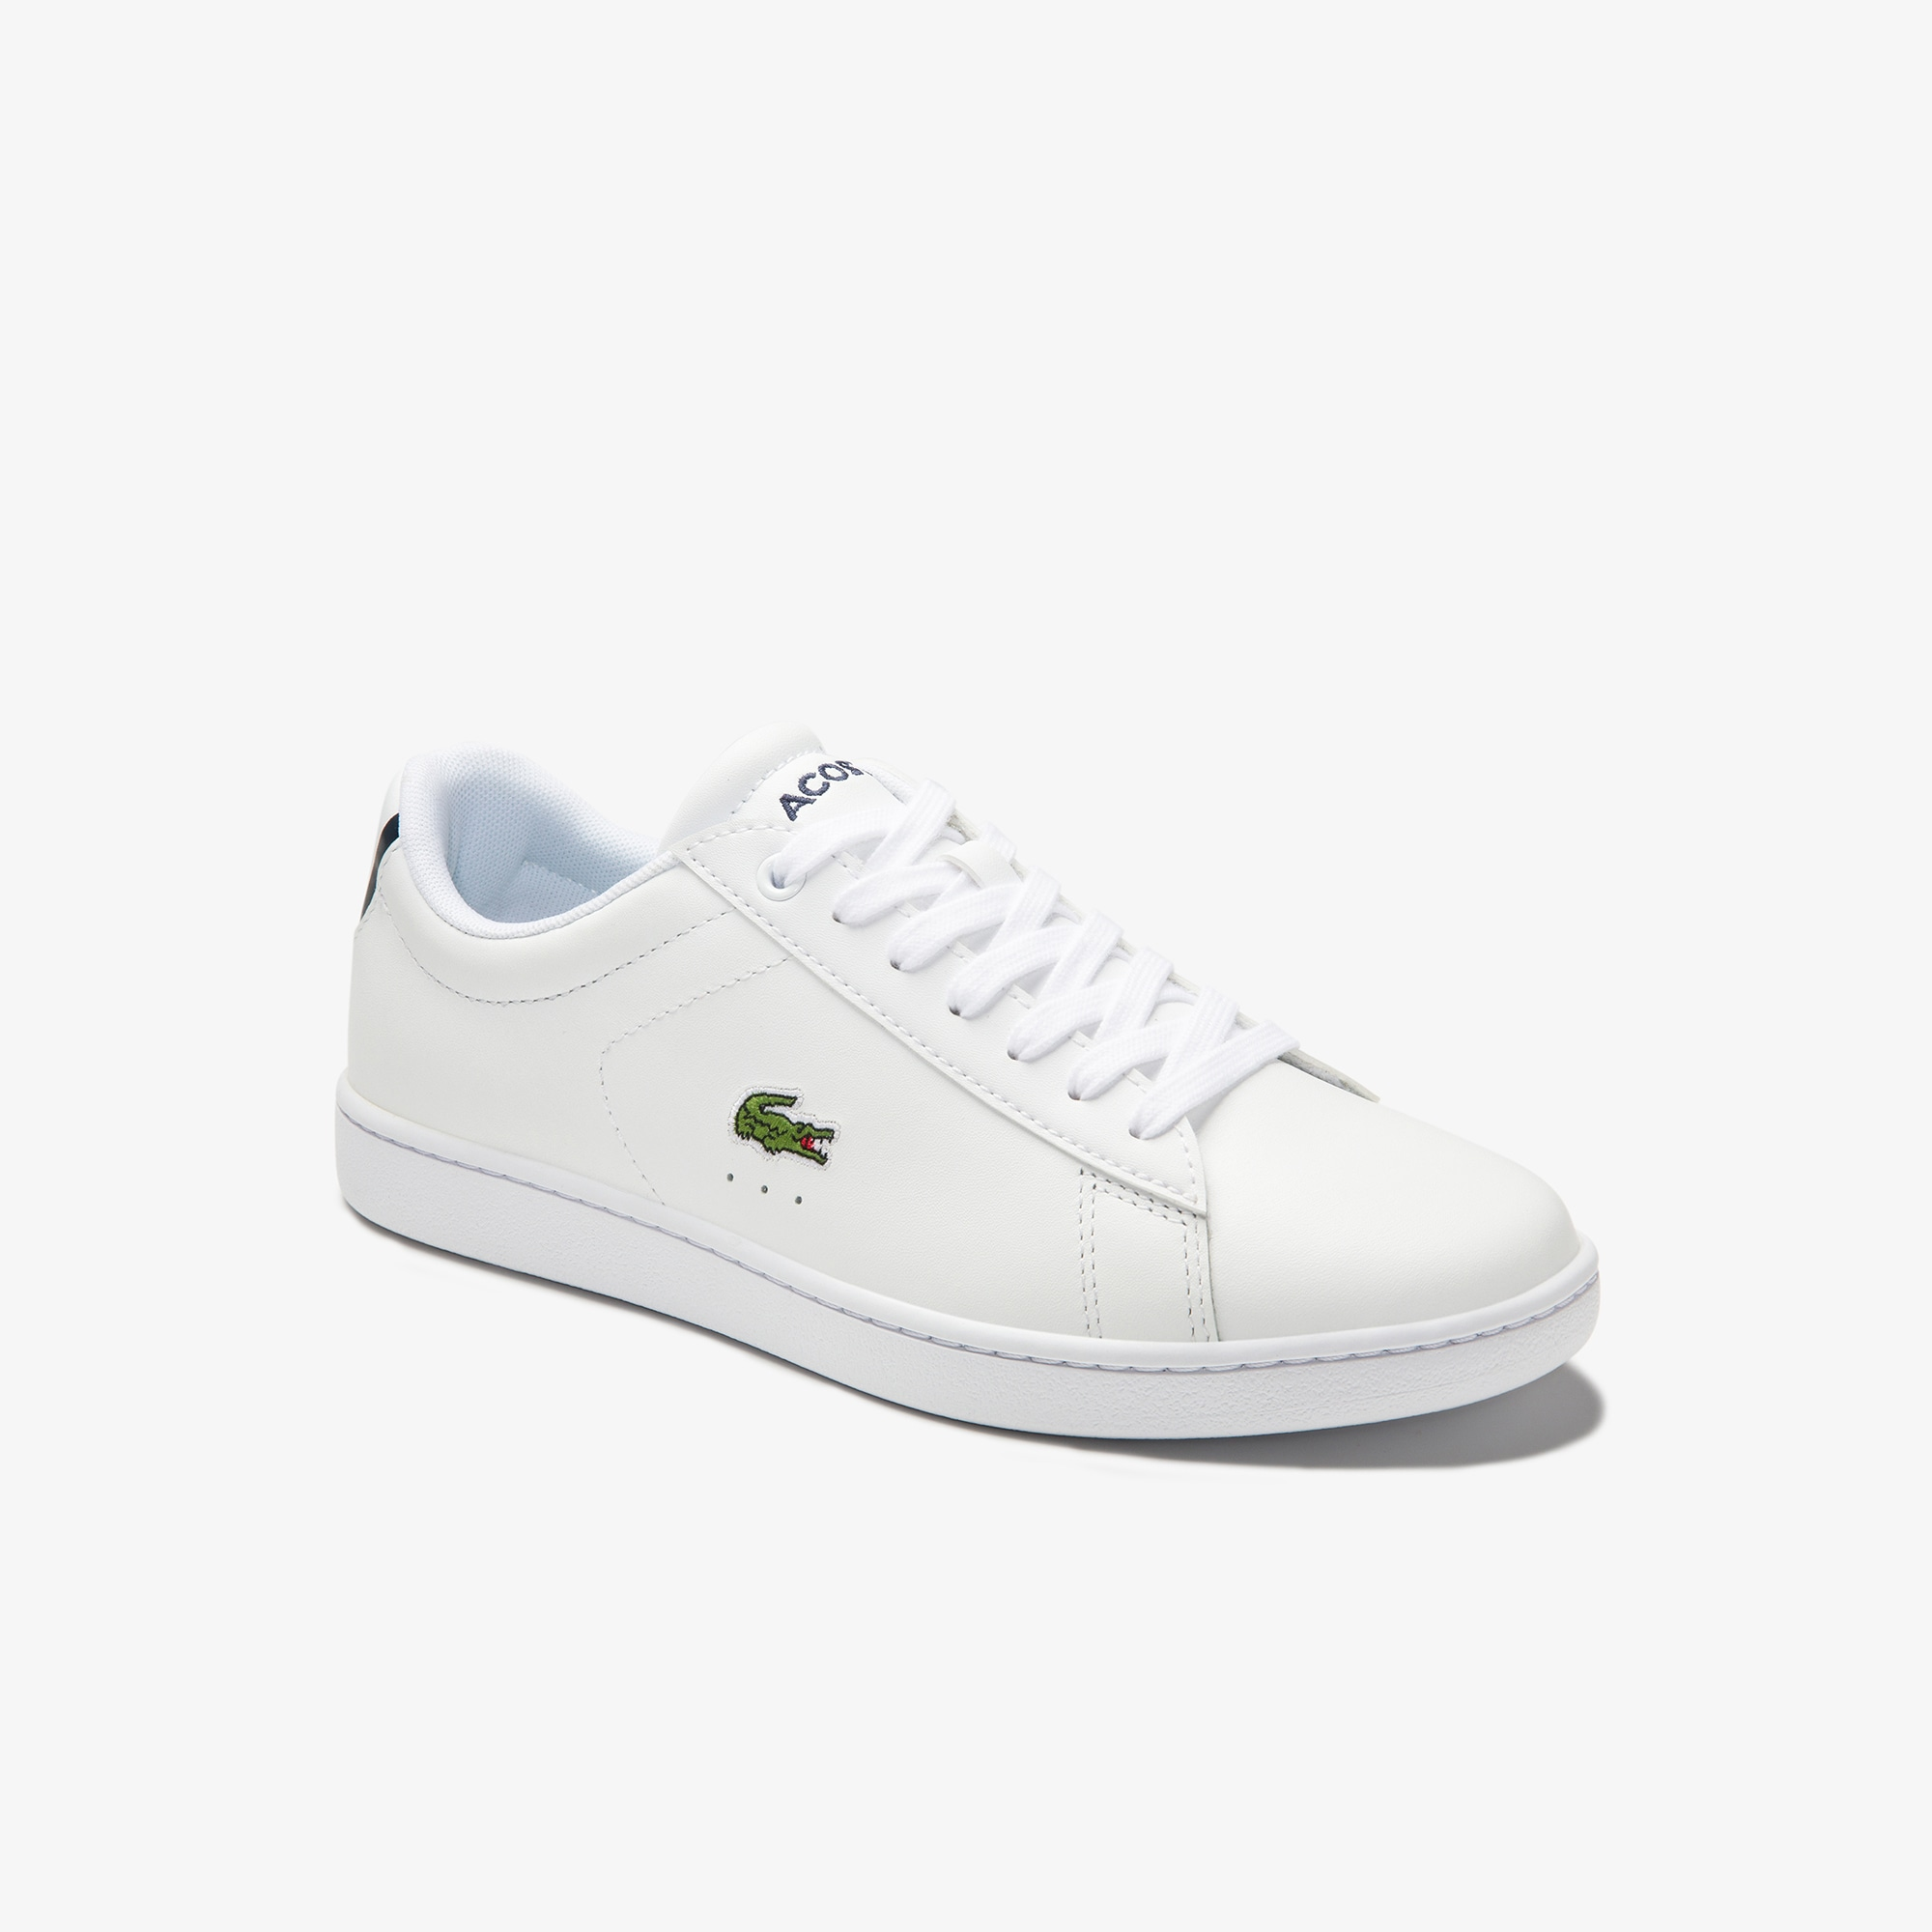 lacoste shoes for women boots trainers sneakers lacoste. Black Bedroom Furniture Sets. Home Design Ideas